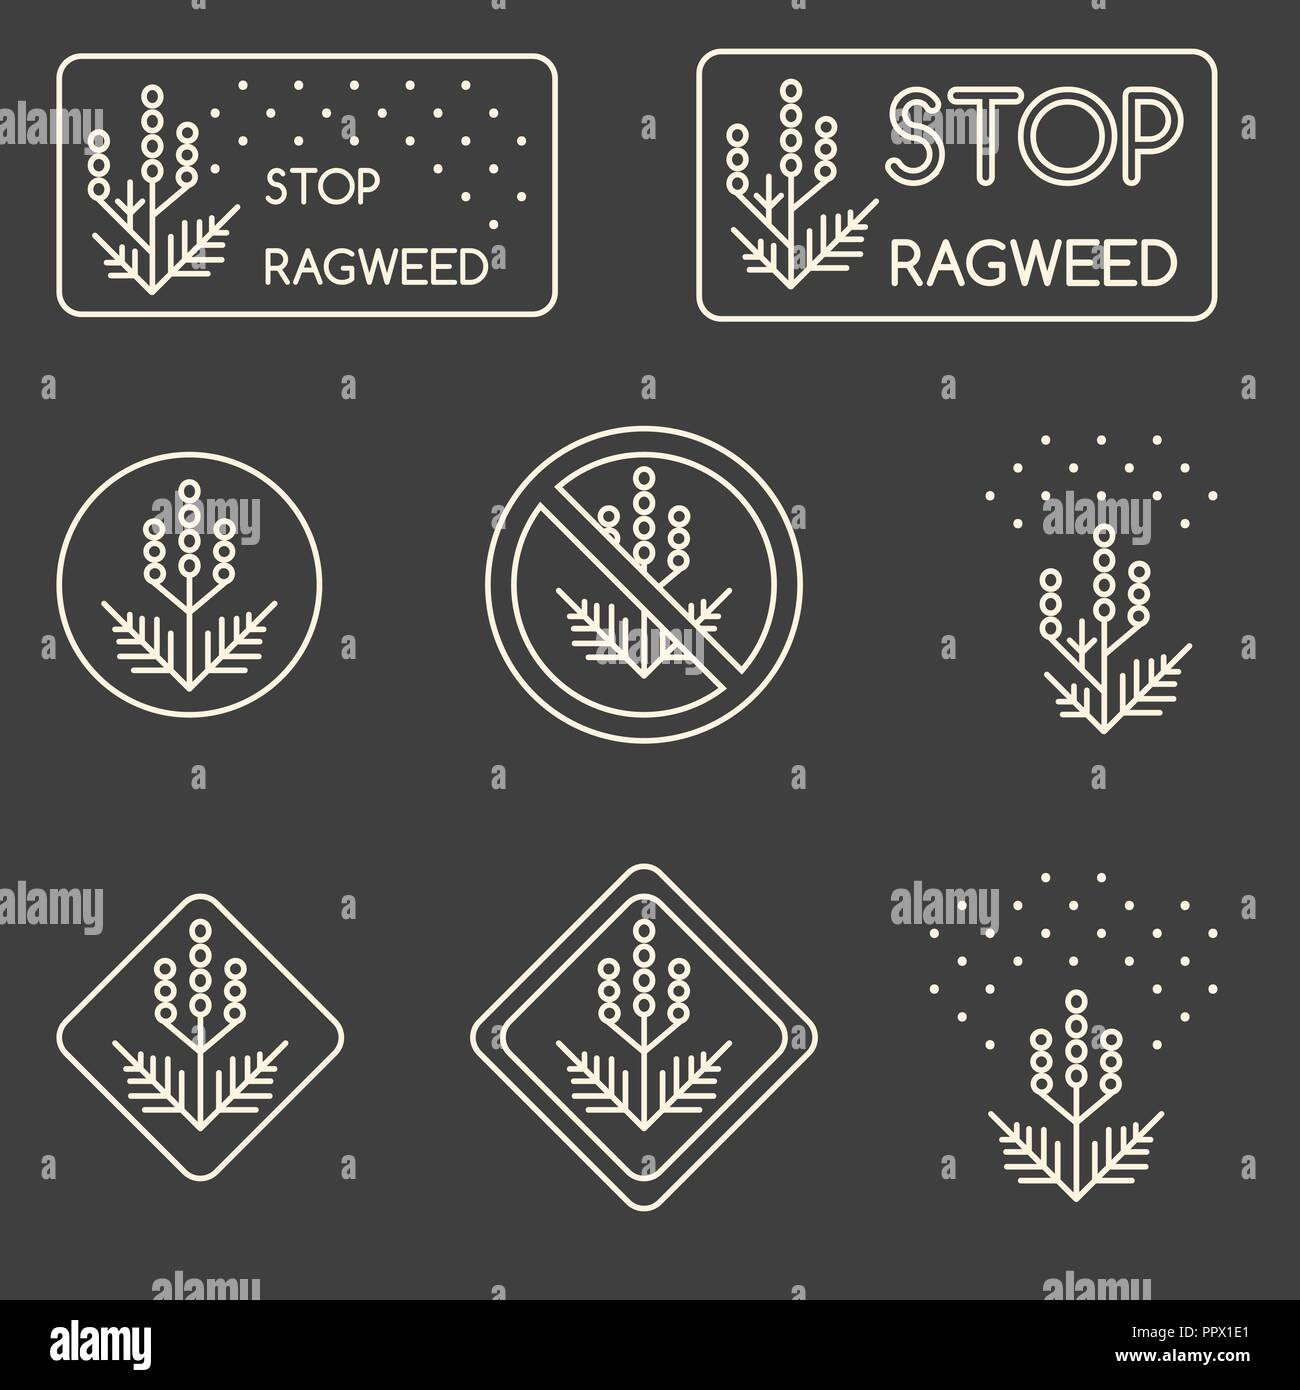 Set of minimalist linear signs about ragweed, dangerous weed, allergy cause Stock Vector